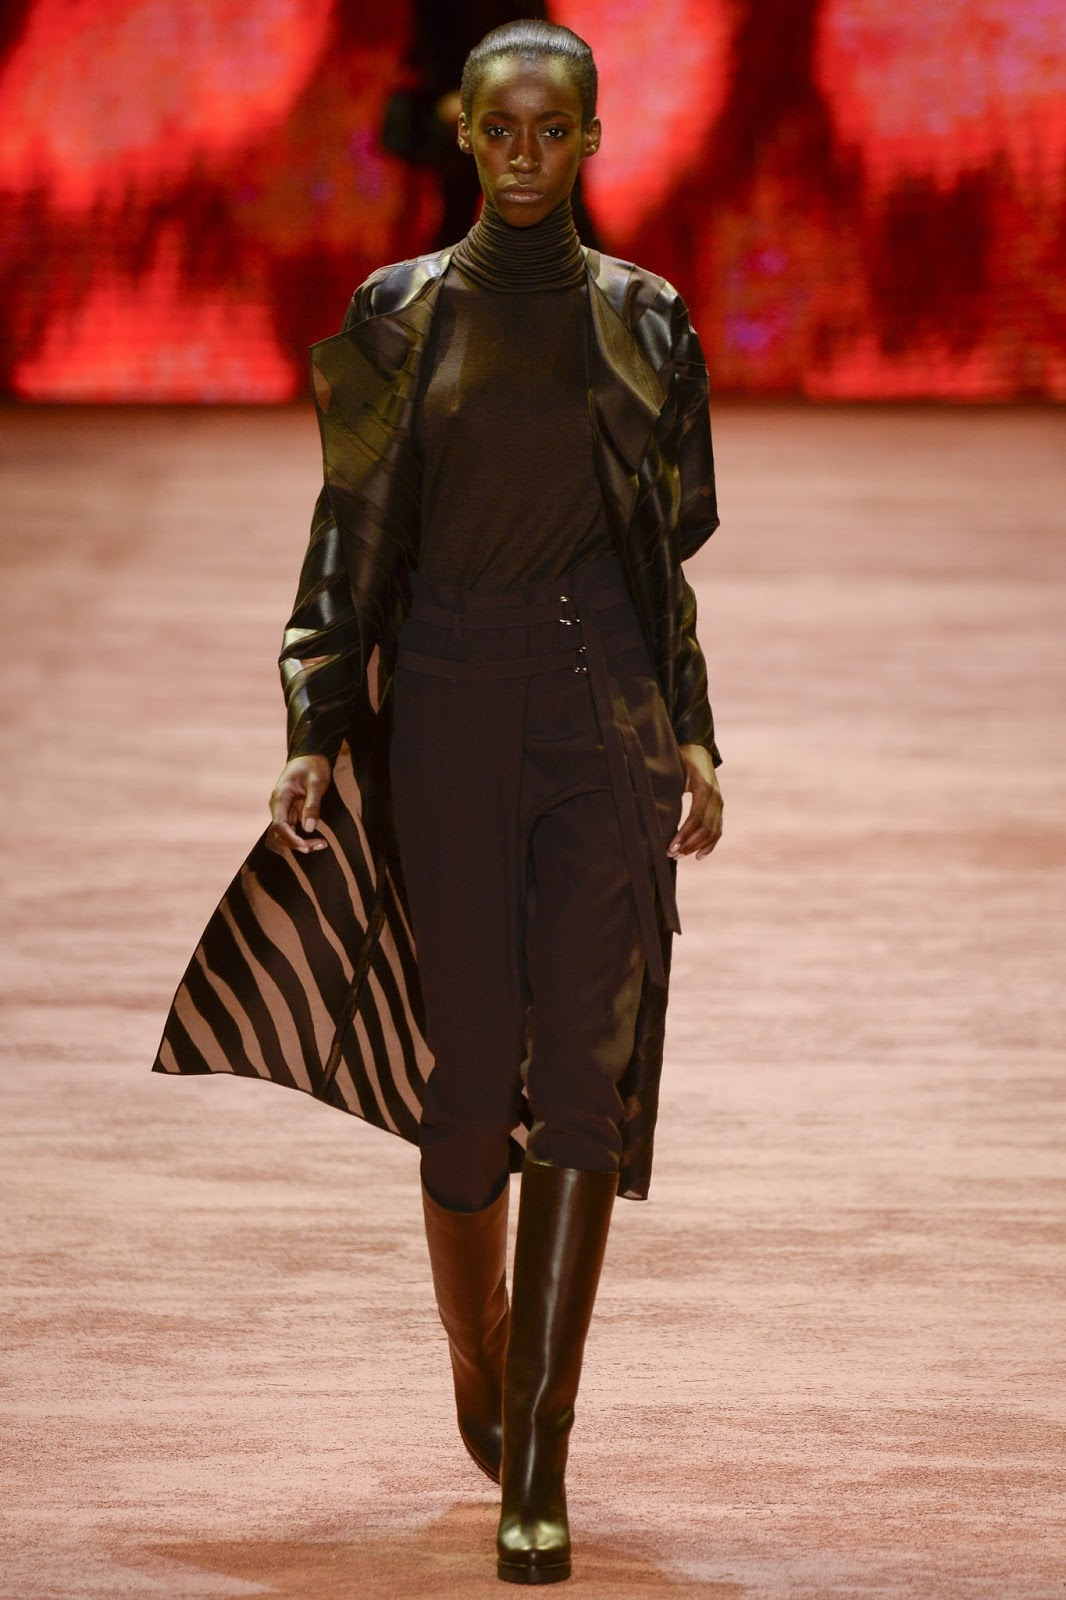 Paris fashion week best collections / Akris Fall/Winter 2016 via www.fashionedbylove.co.uk british fashion blog